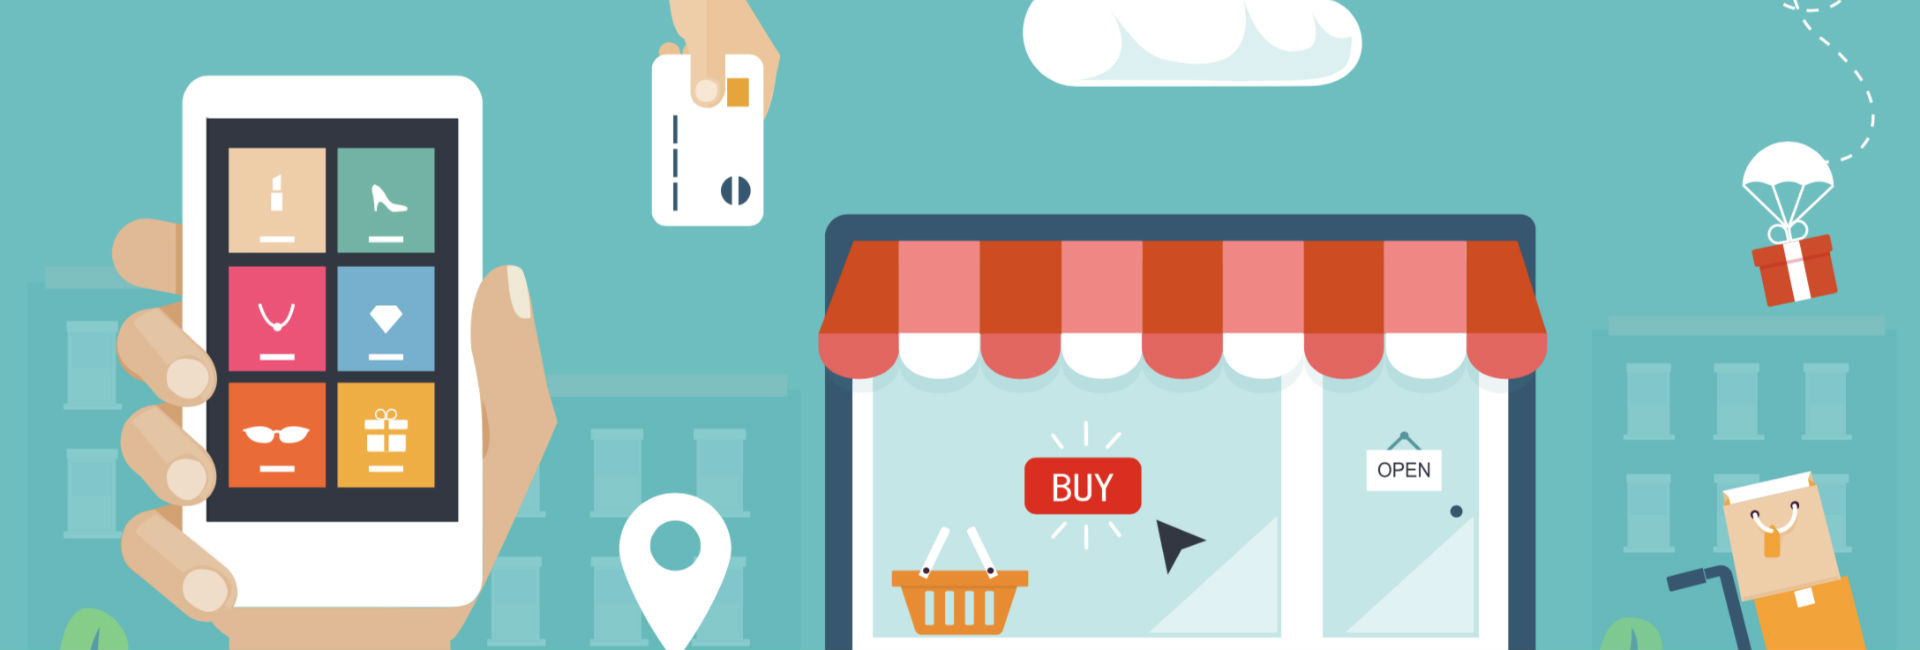 5 Mobile Marketing Trends You Can't Afford to Ignore